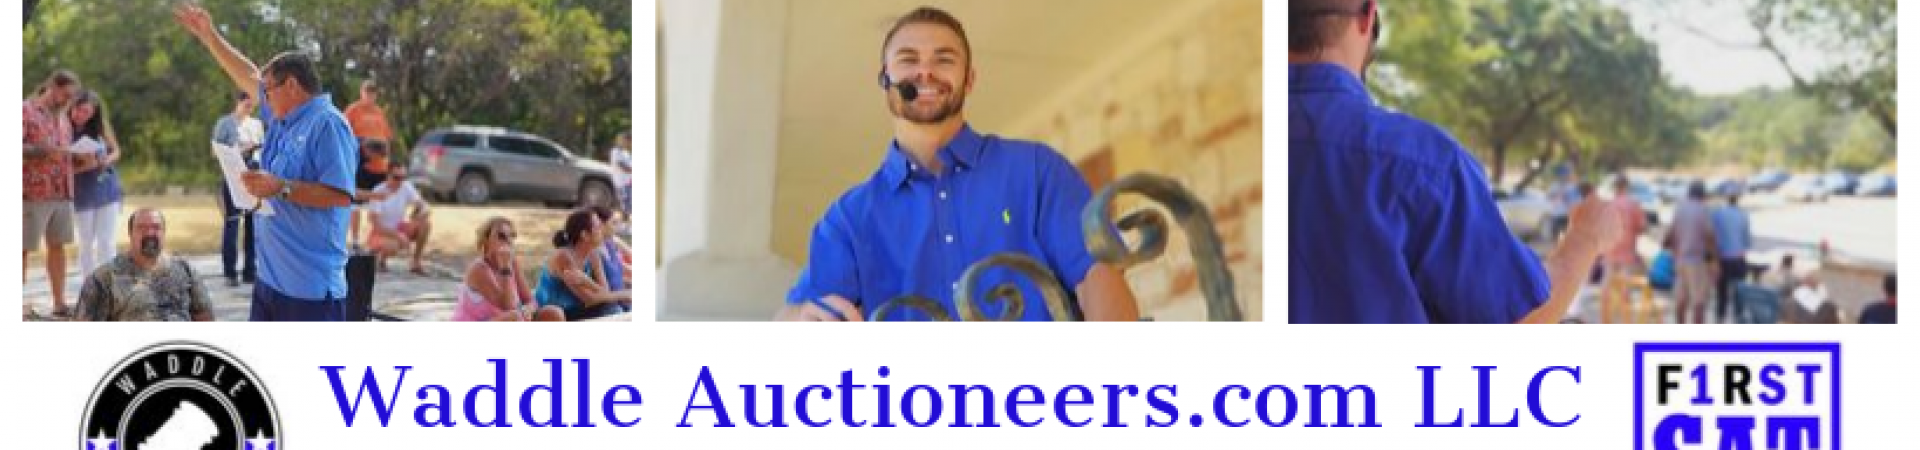 Waddle auctioneers.com llc - fb banner